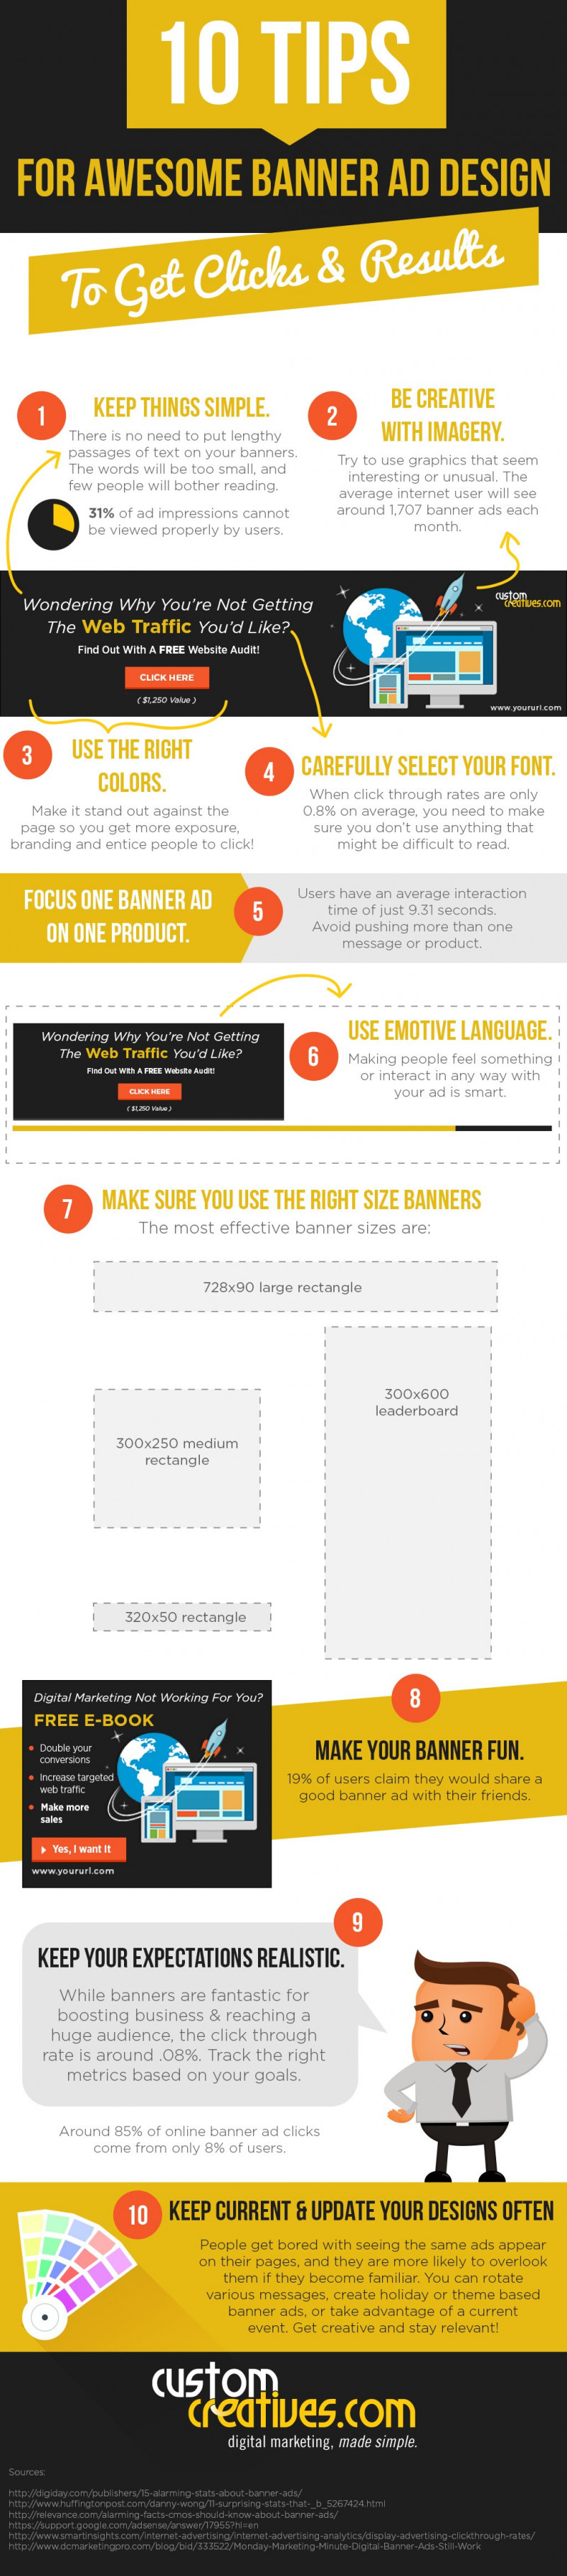 INFOGRAPHIC: 10 Tips for Awesome Banner Ad Design to Get Clicks and Results